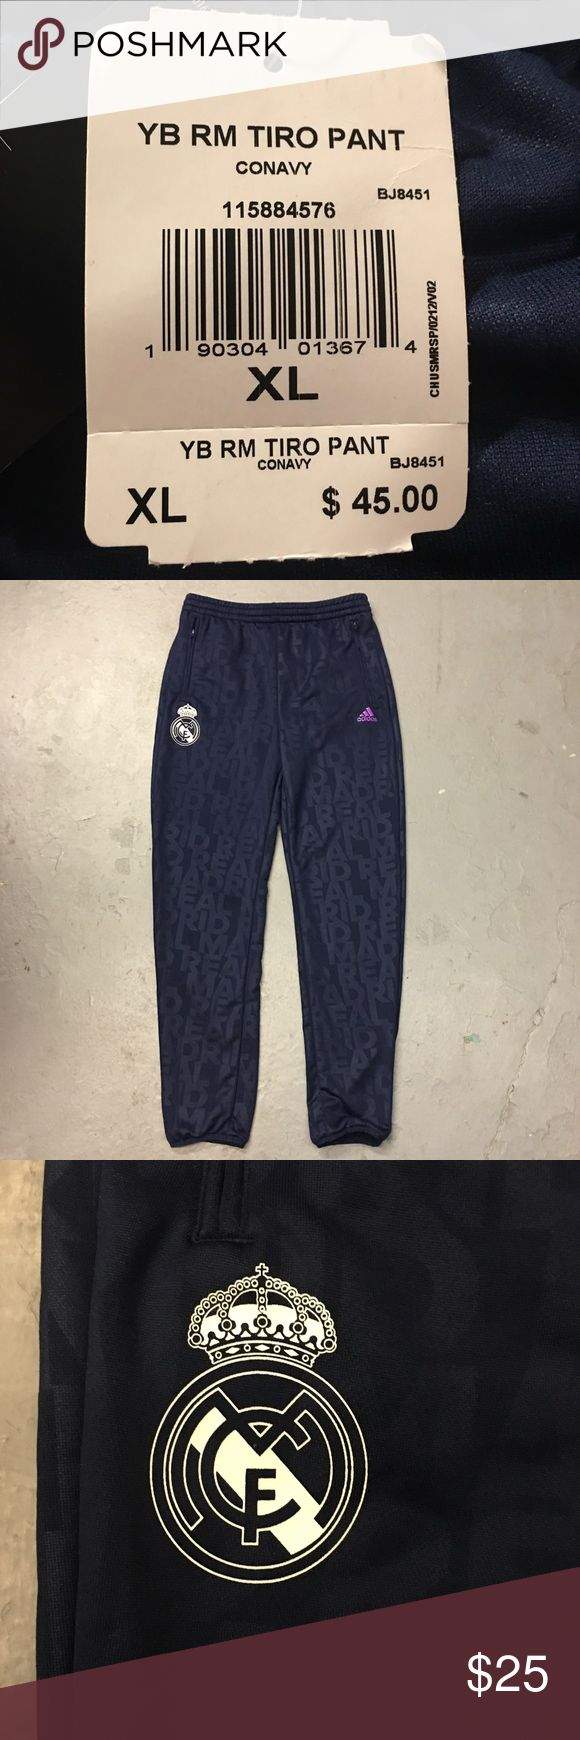 New Adidas Real Madrid Youth Tiro Pants Brand new Adidas Real Madrid Tiro Pants that have never been worn. These are navy blue pants that will definitely show how much you love Real Madrid! adidas Bottoms Sweatpants & Joggers